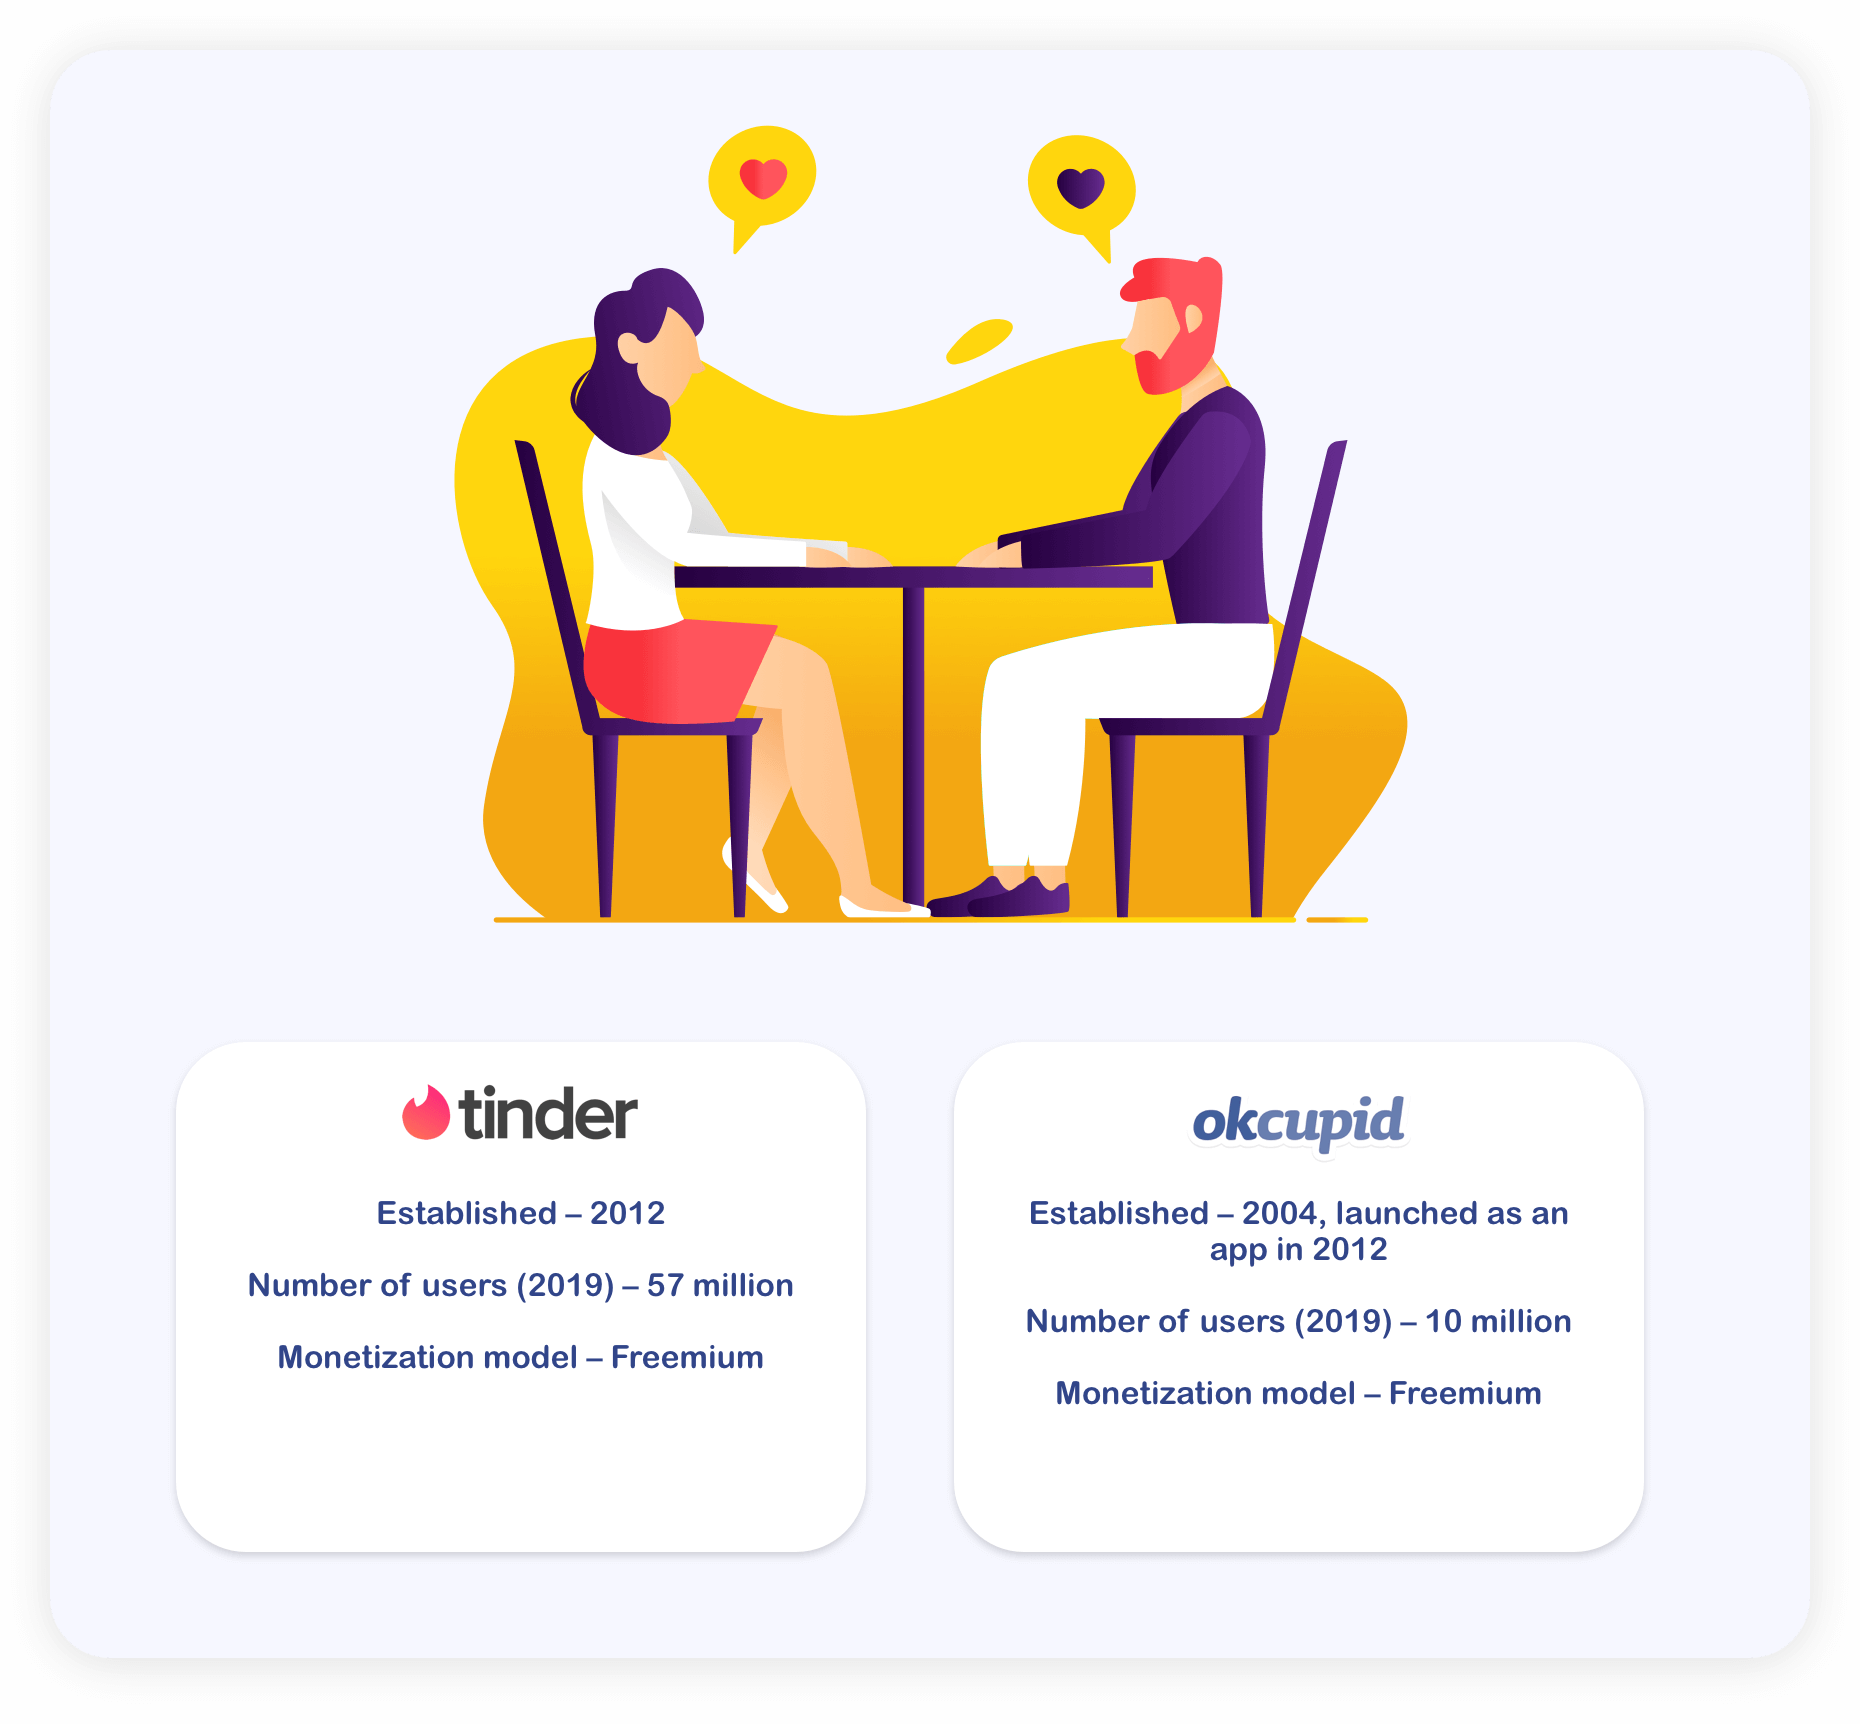 How to Create a Dating App? Make an App Like Tinder | Lanars